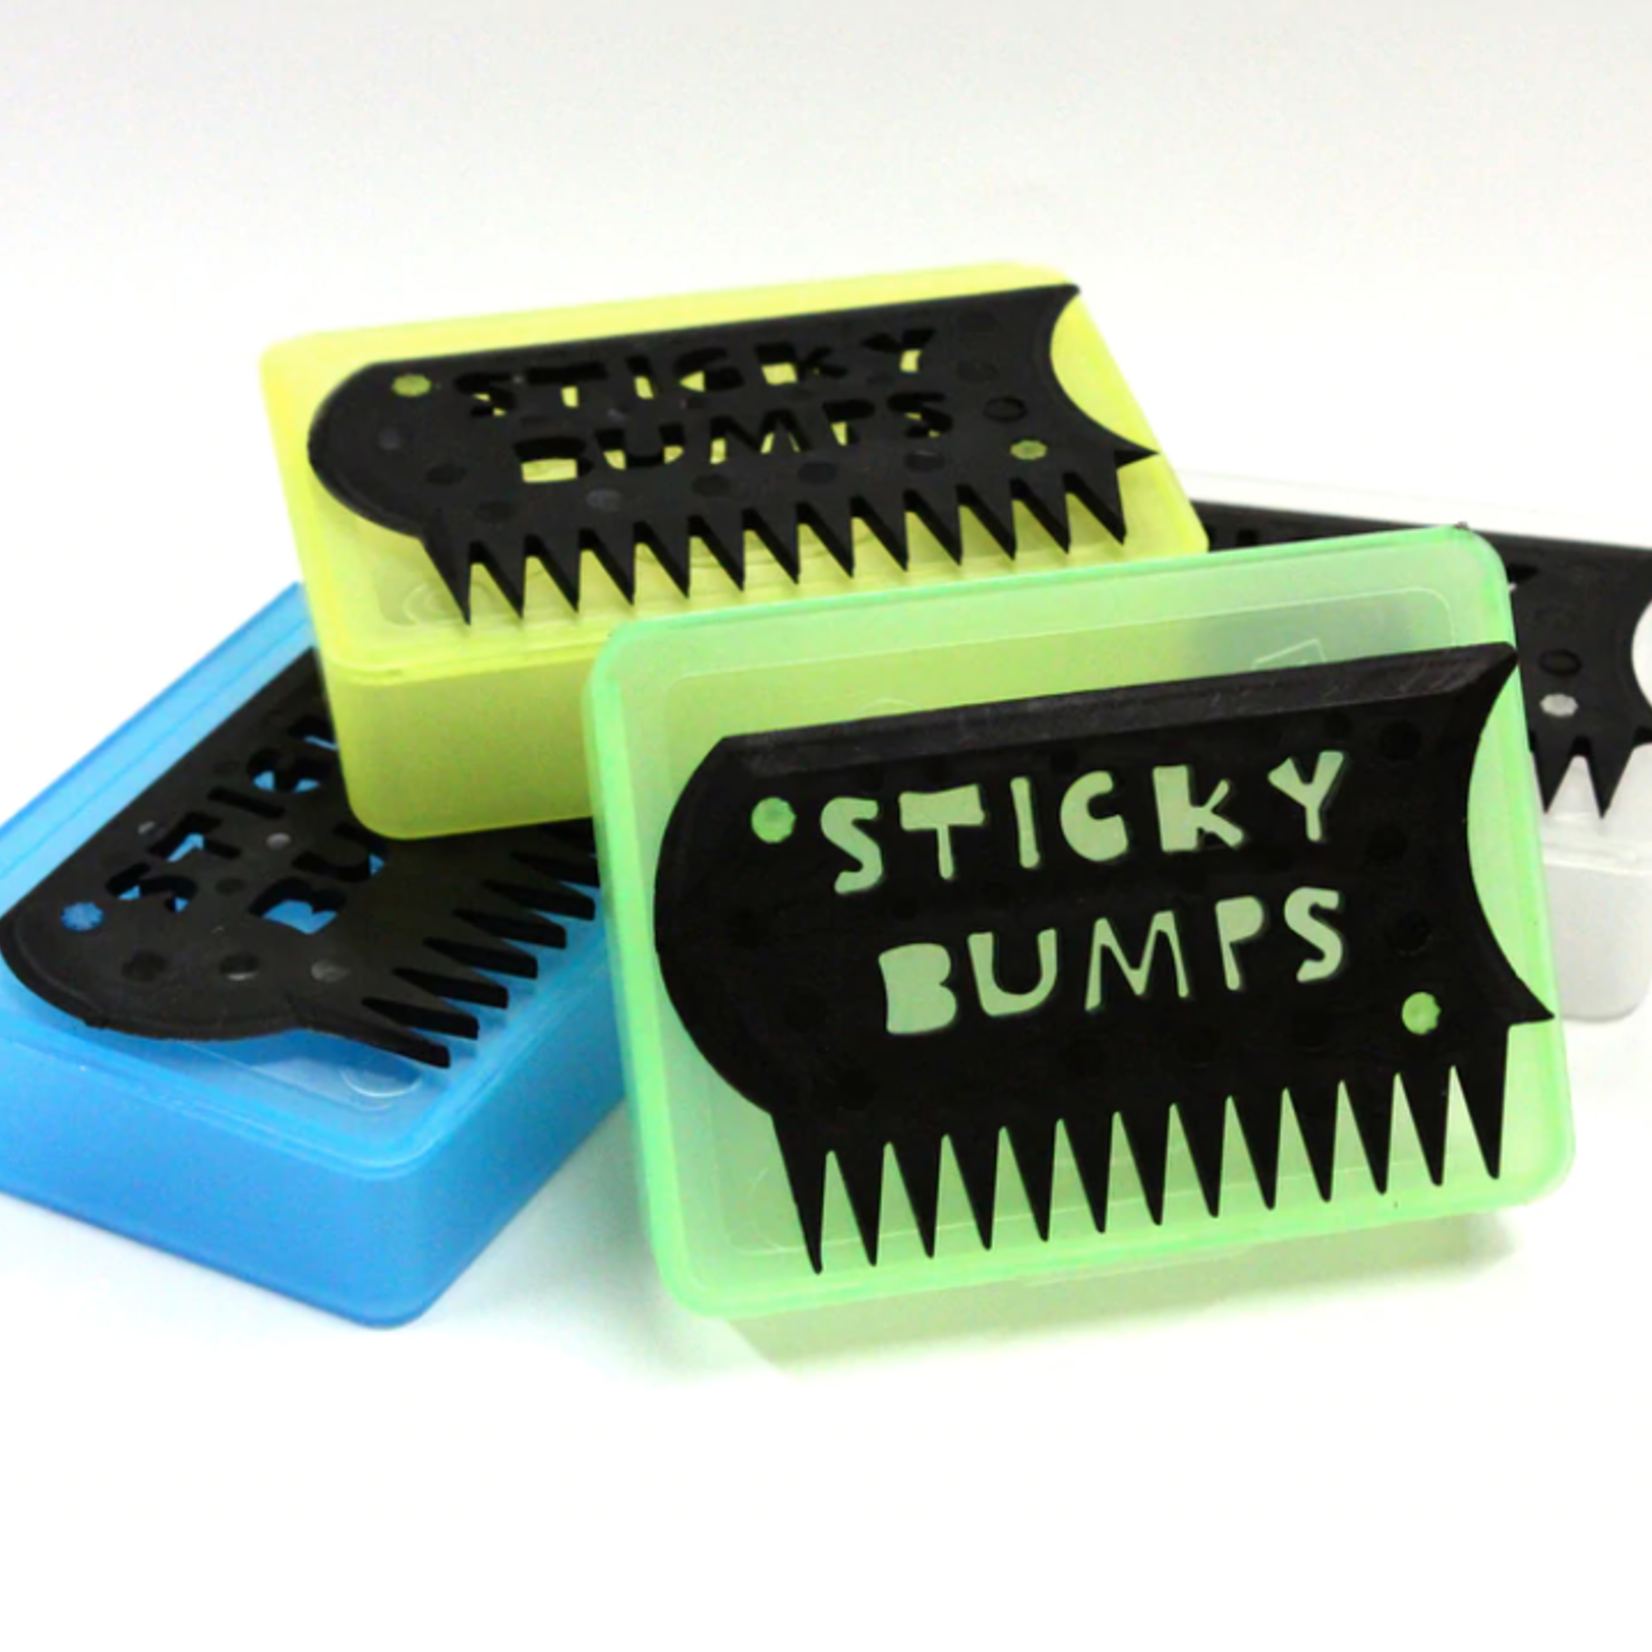 Sticky Bumps Surf Wax Case with Comb.